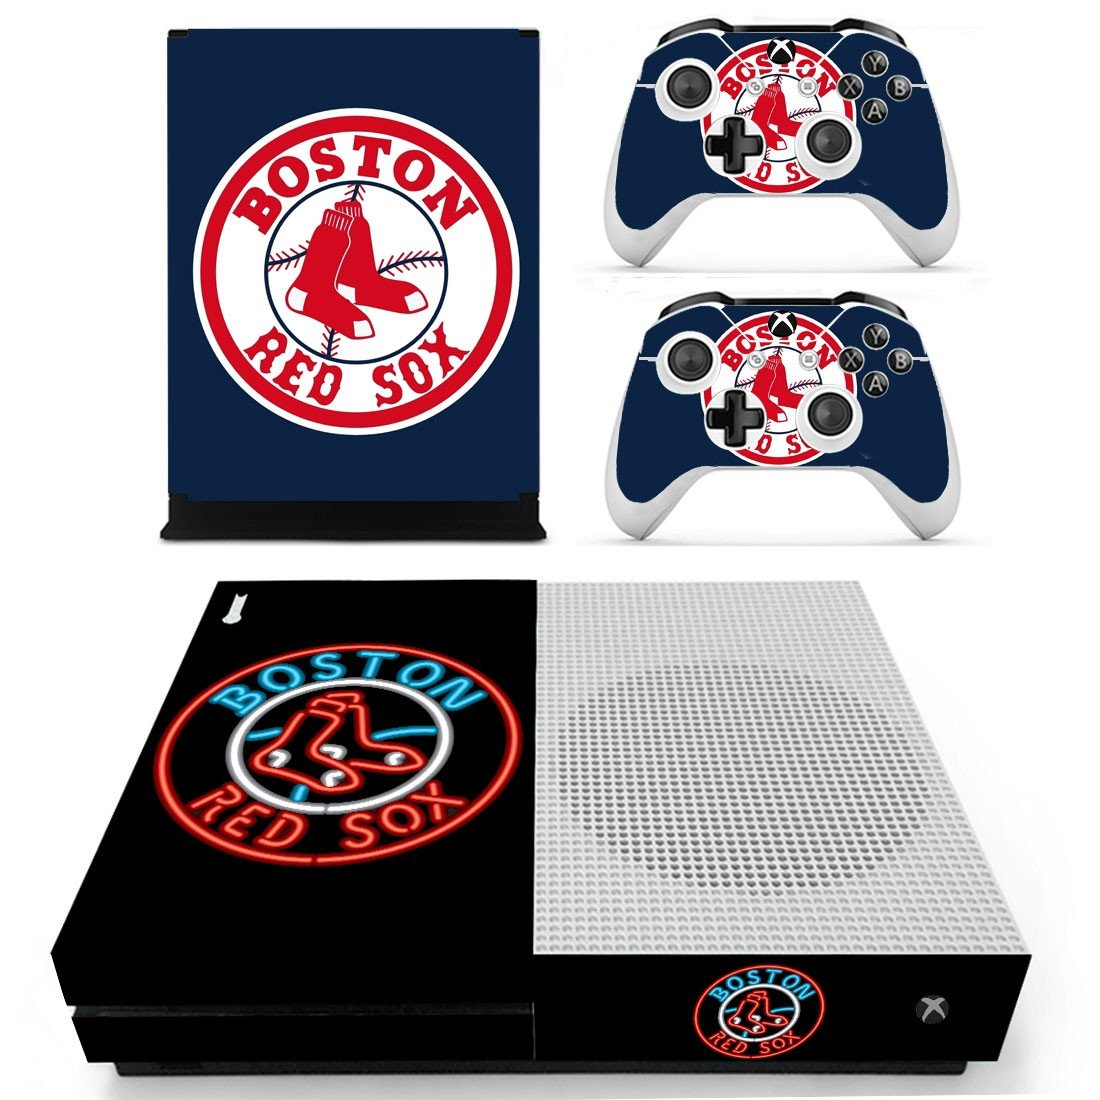 Boston Red Sox decal skin sticker for Xbox One S console and controllers